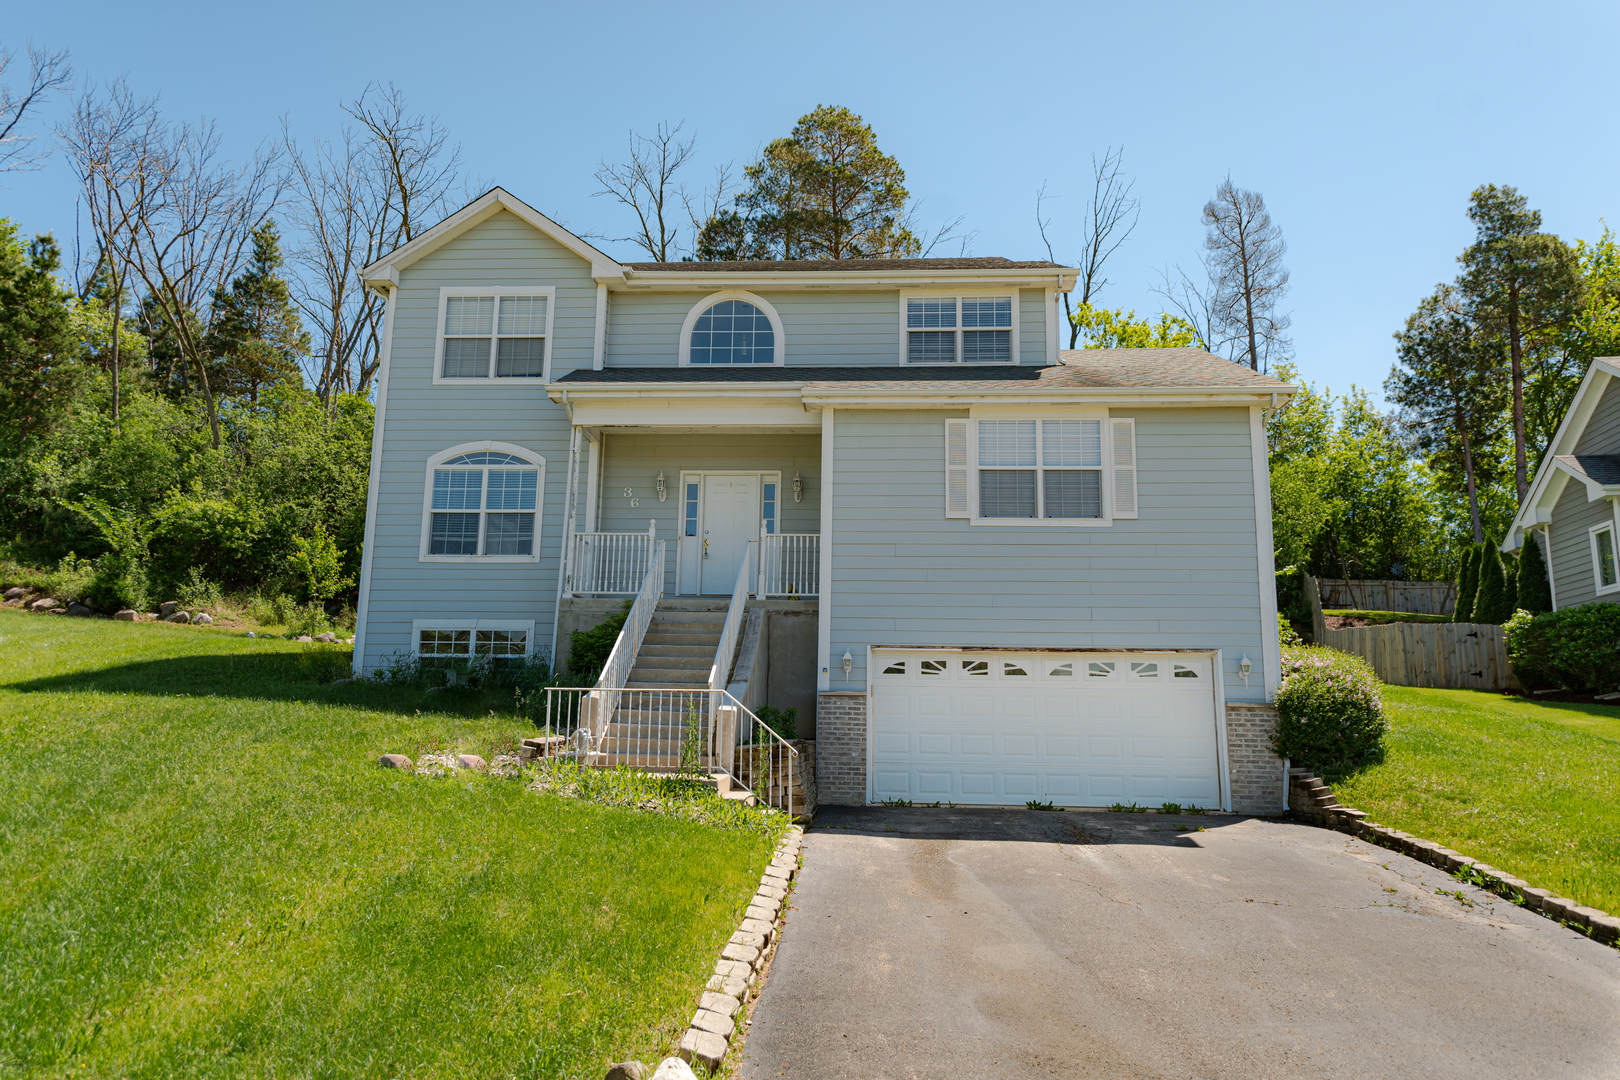 36 BURNETTE Drive 60002 - One of Antioch Homes for Sale